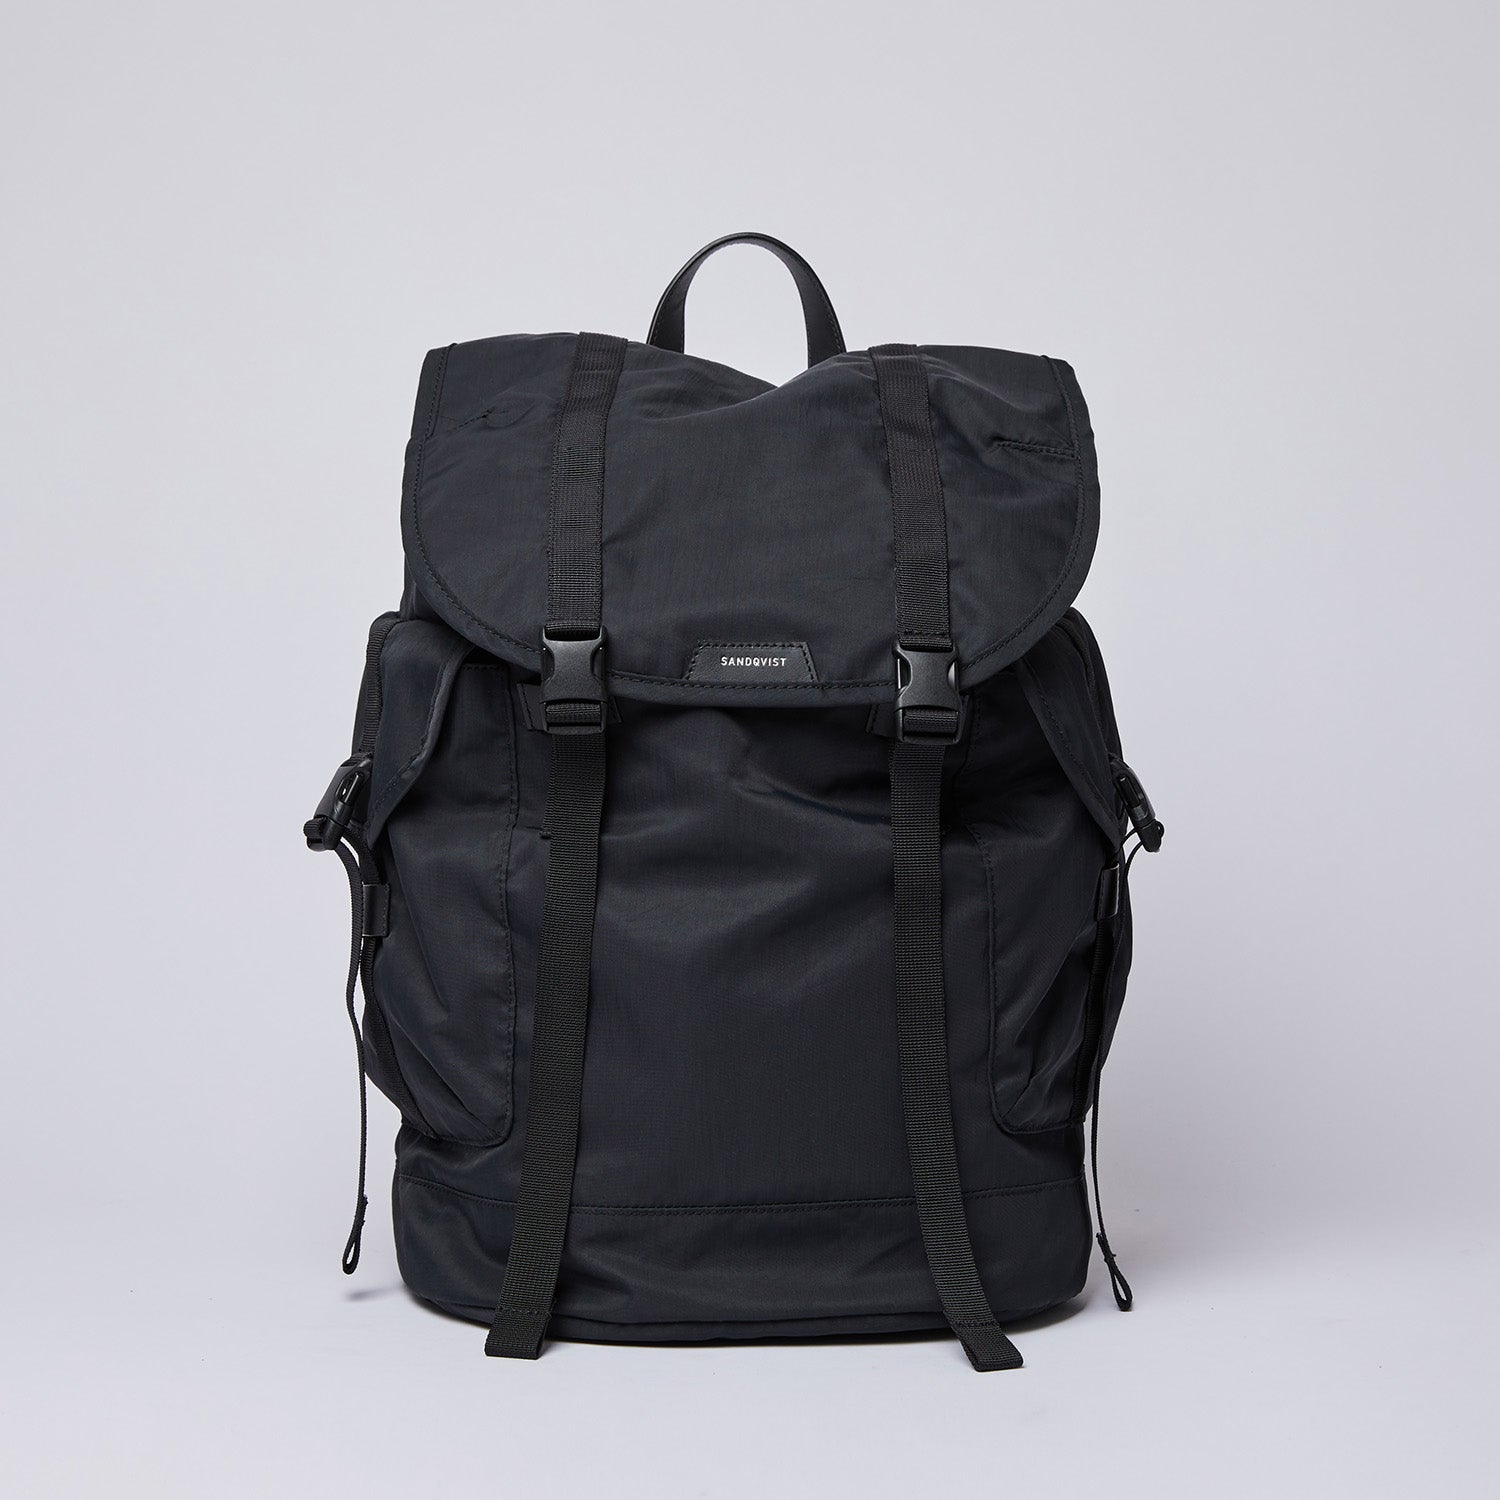 Sandqvist Charlie Backpack - Black